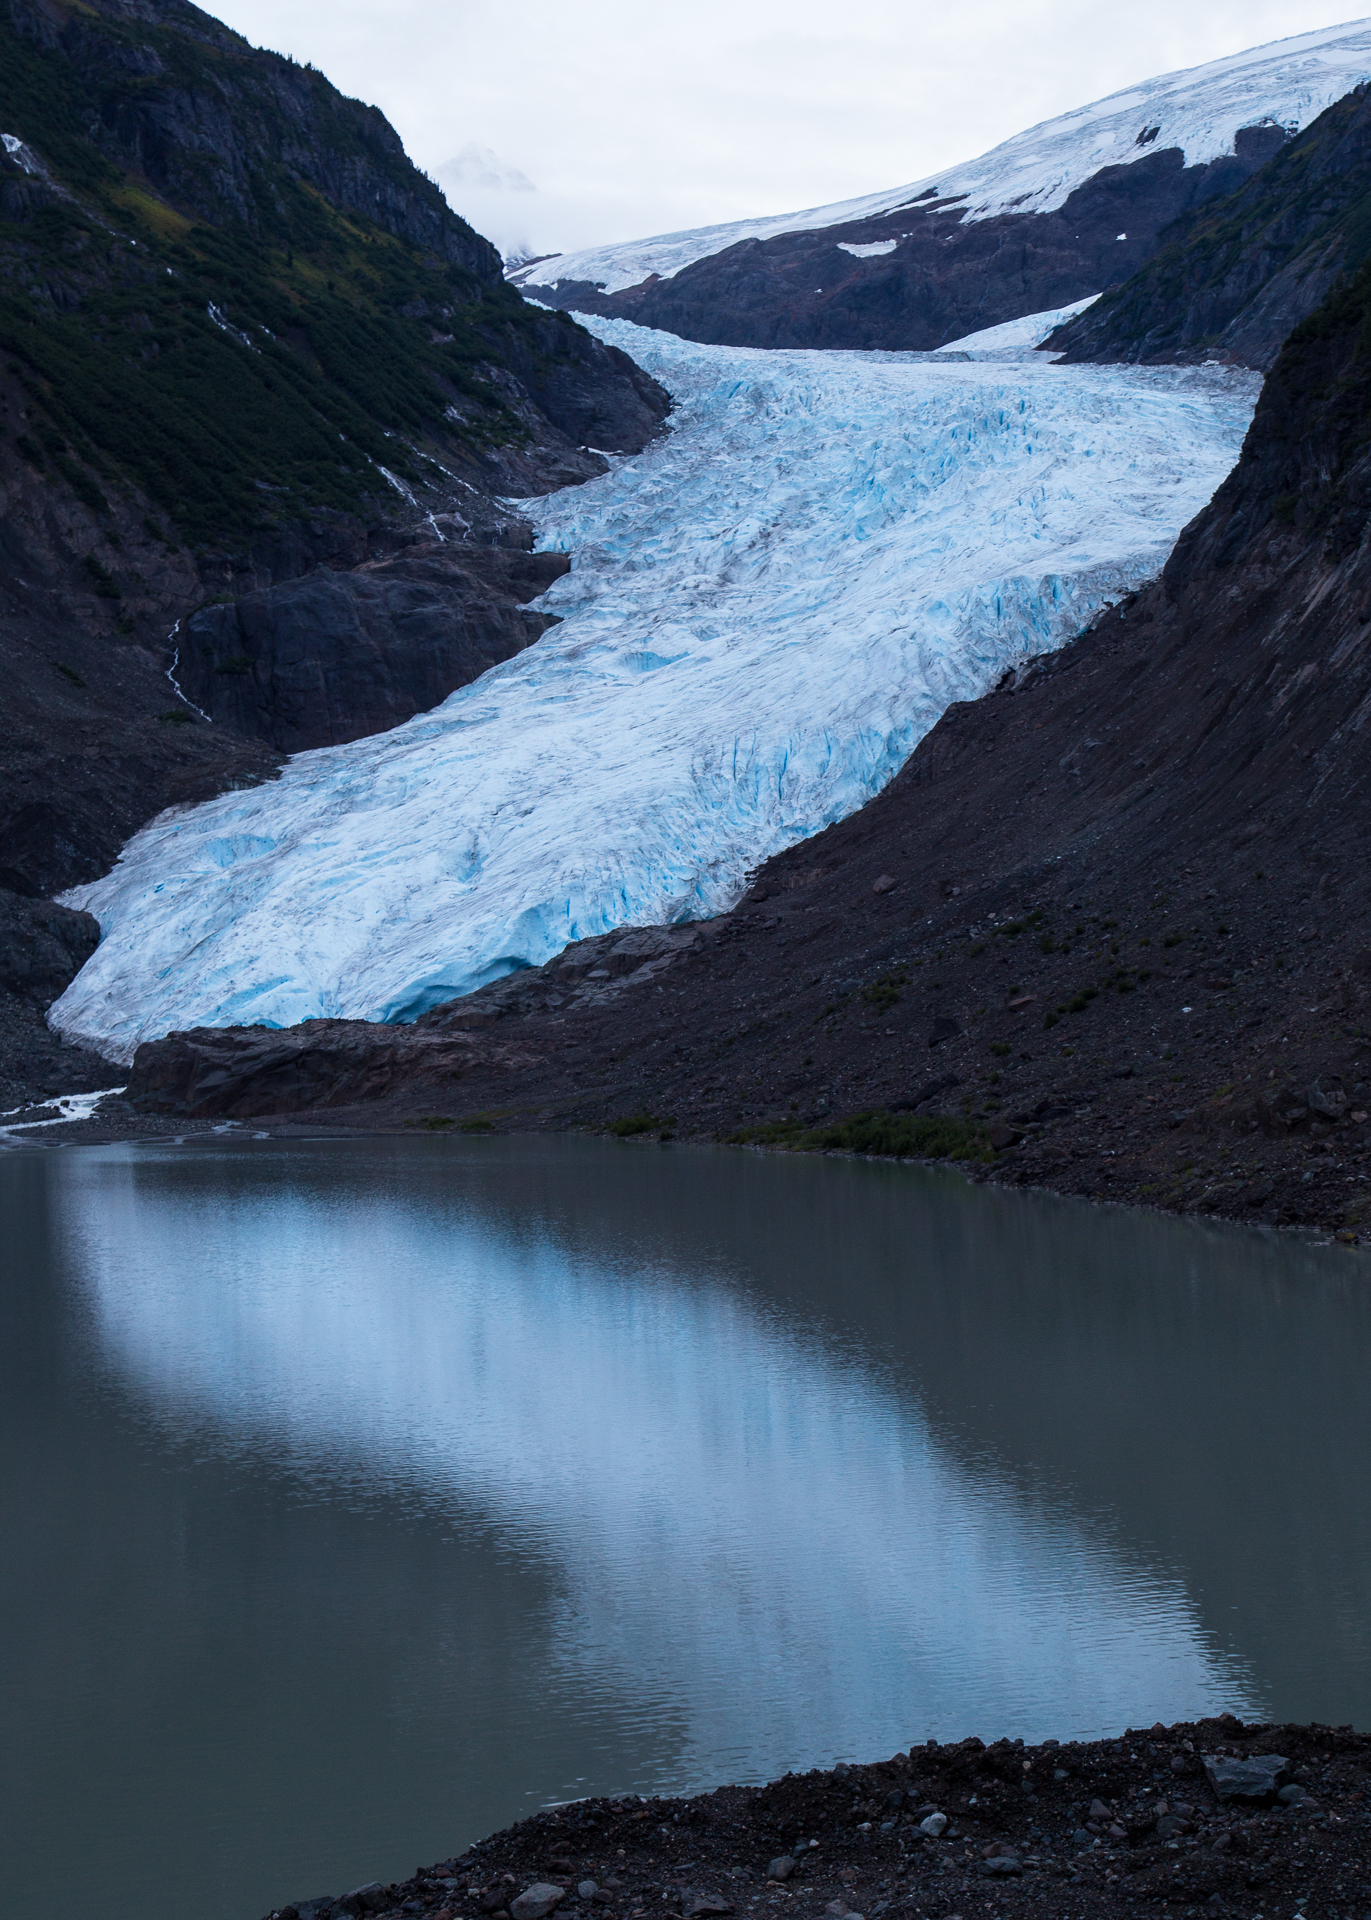 The BEar Glacier glowing on the water in the twilight.